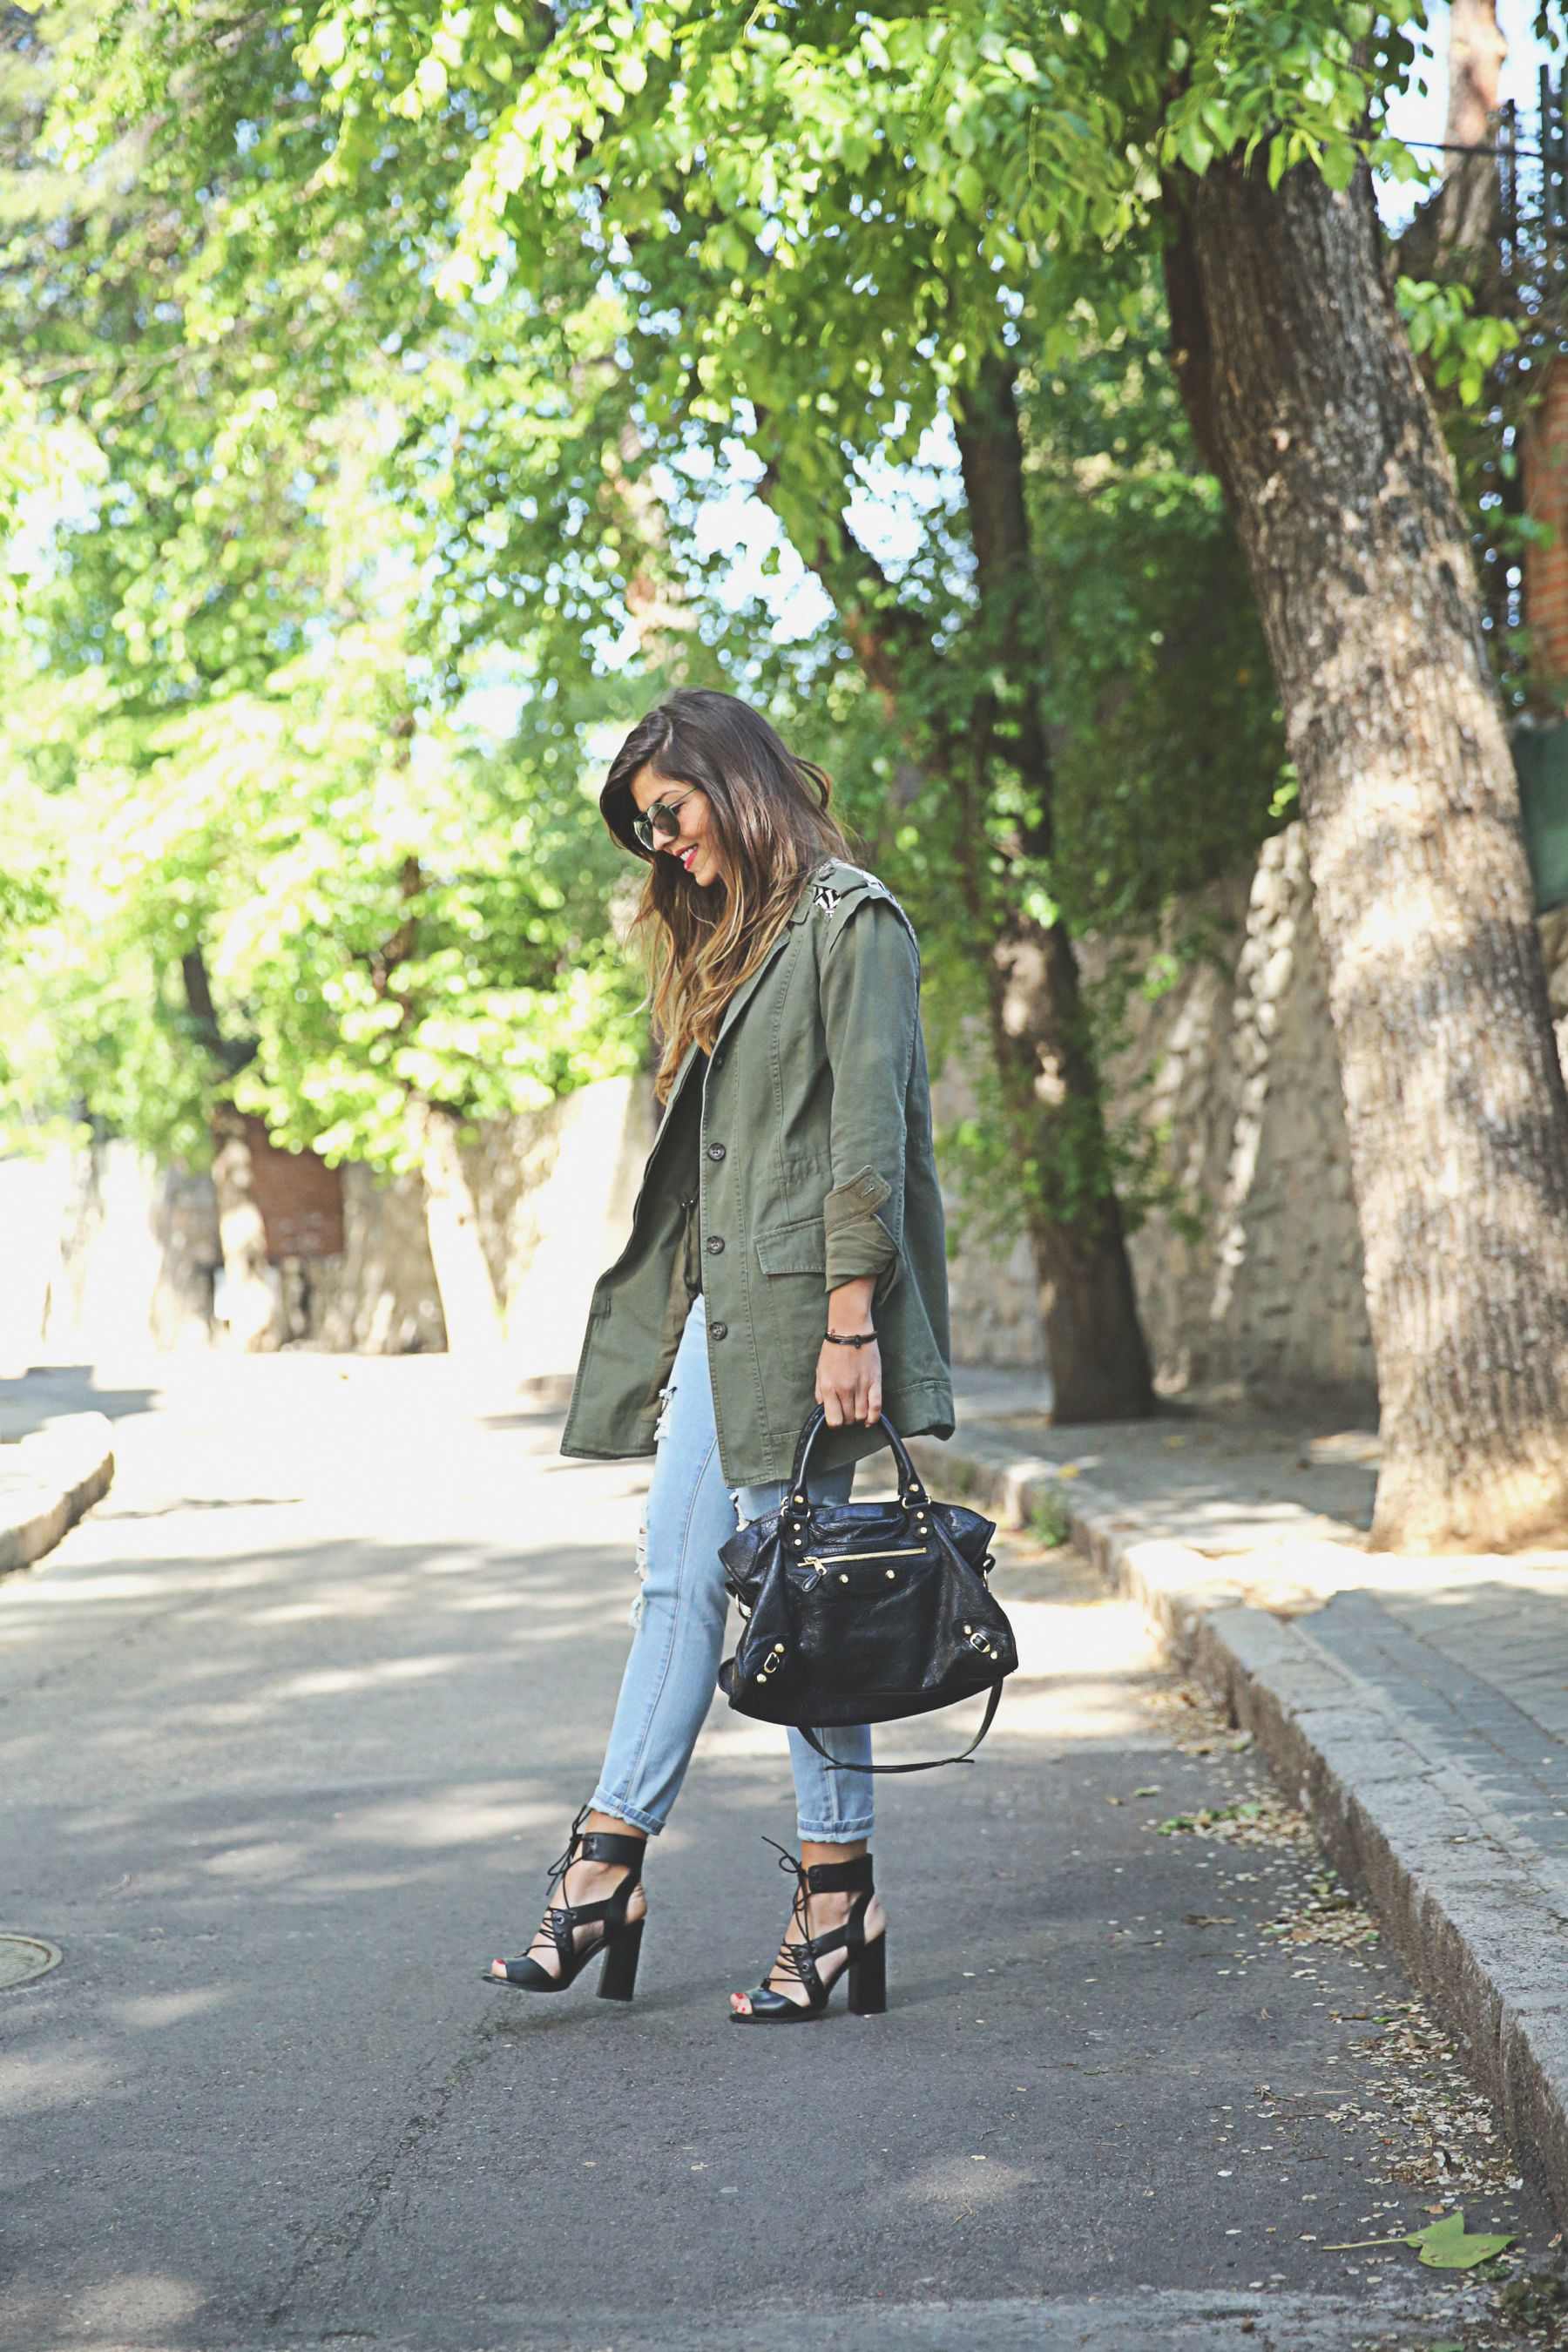 Military Look Trend: Natalia Cabezas is wearing a Buylevard khaki green army style jacket